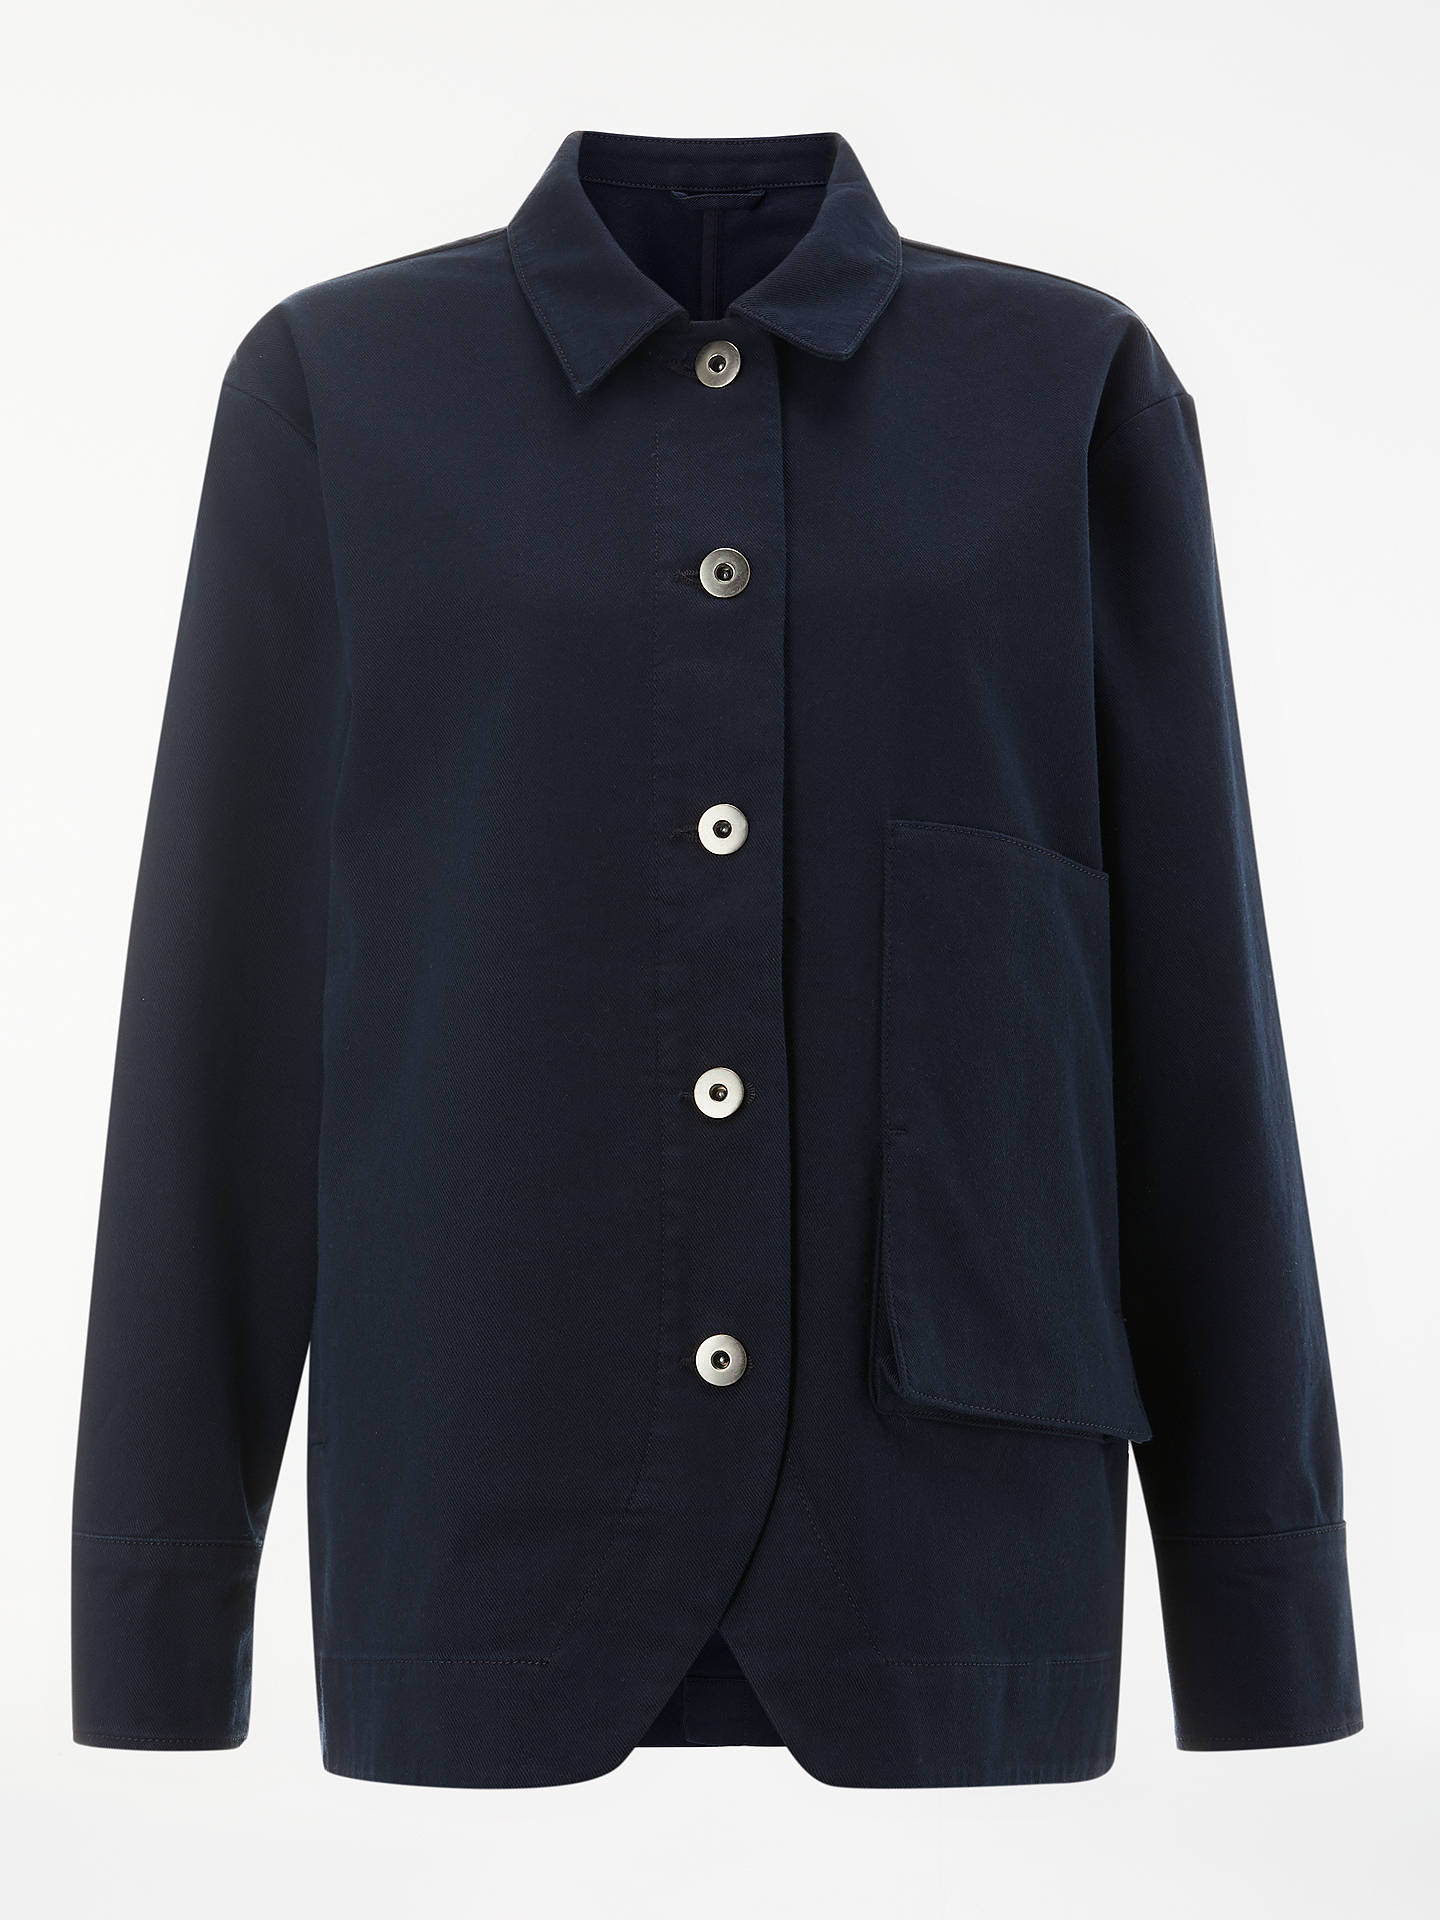 BuyKin Japanese Workwear Jacket, Navy, 8 Online at johnlewis.com